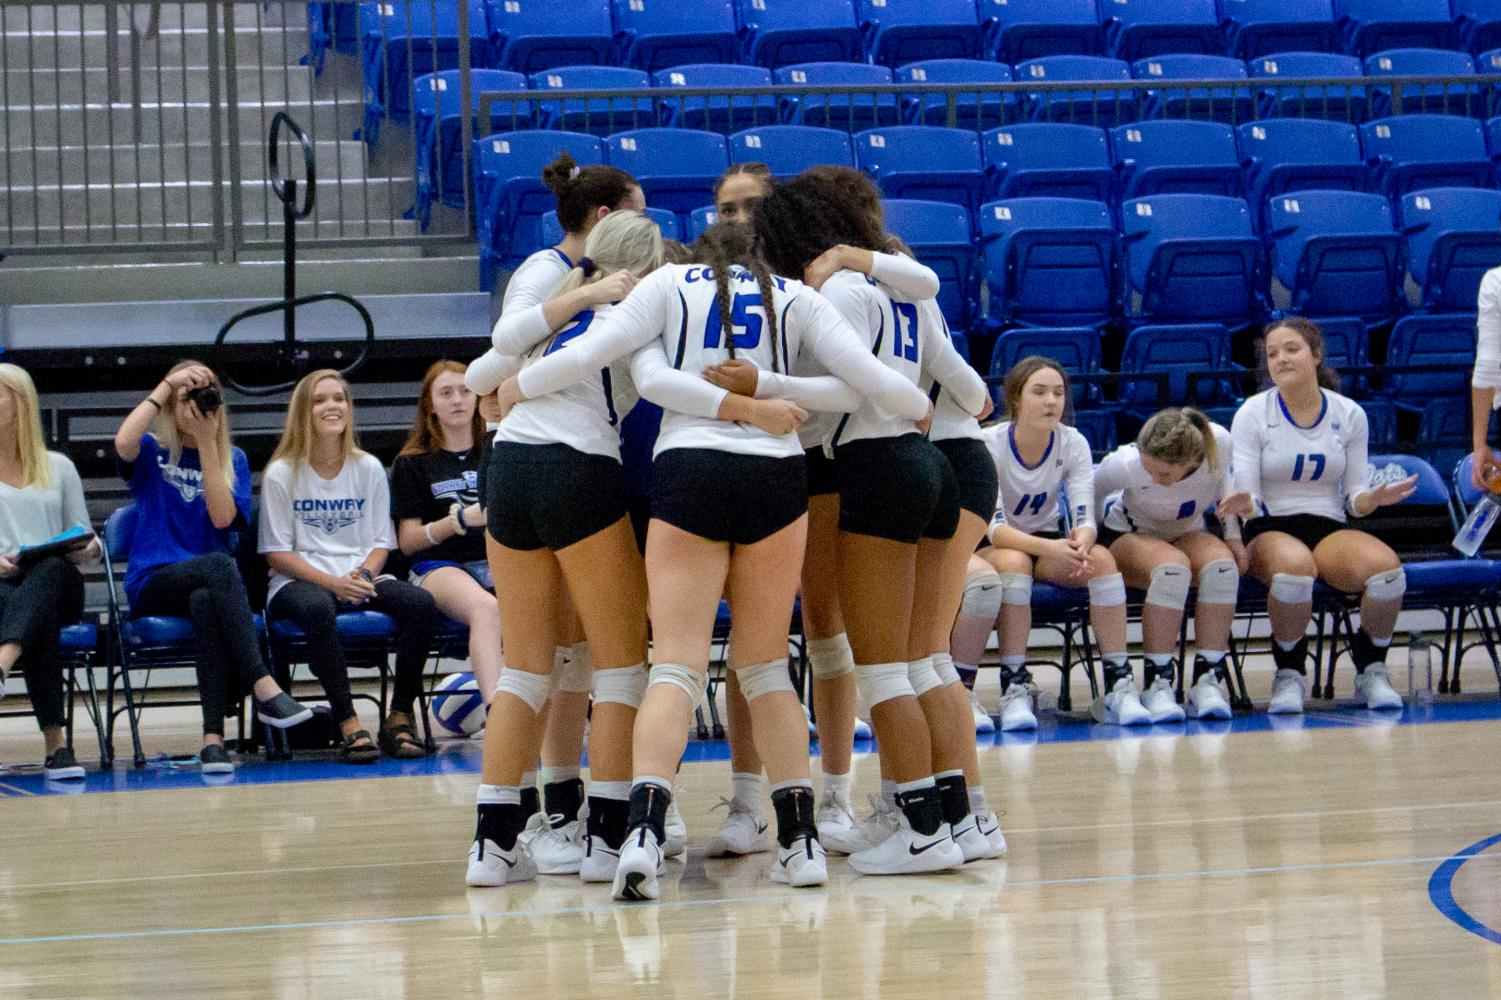 The Lady Cats huddling together before a set